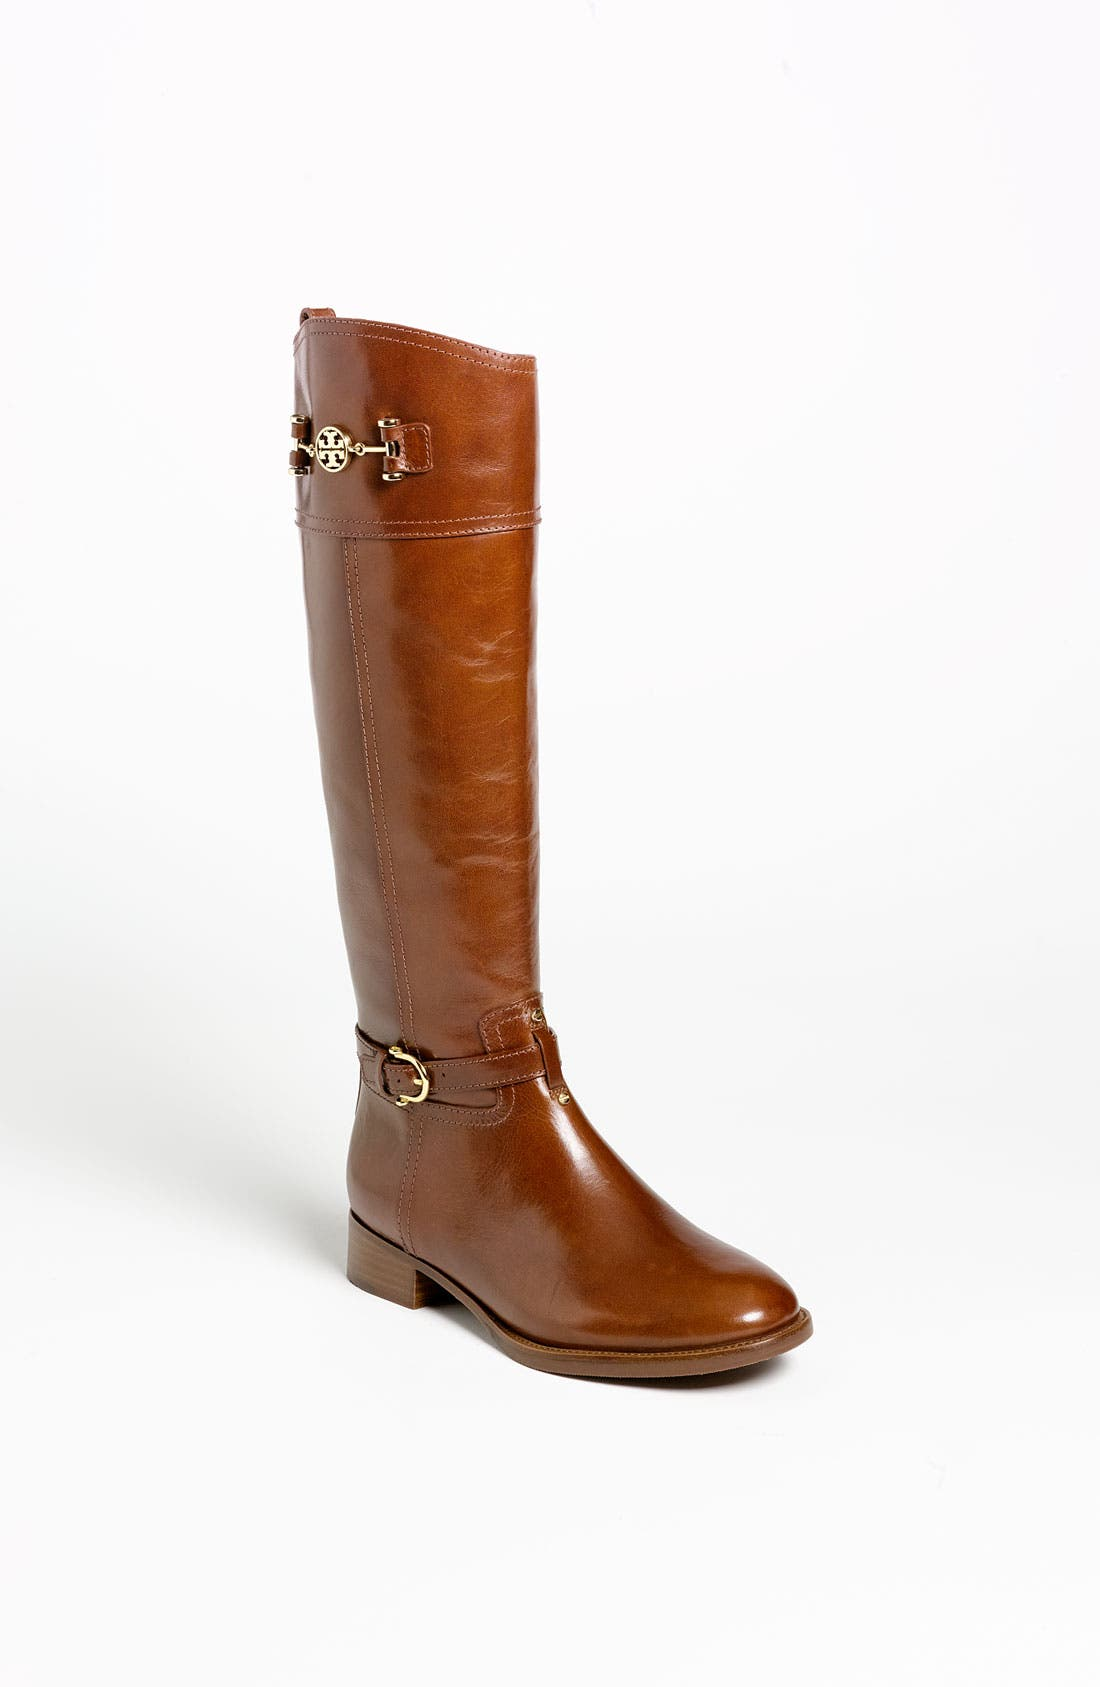 Alternate Image 1 Selected - Tory Burch 'Nadine' Riding Boot (Nordstrom Exclusive)